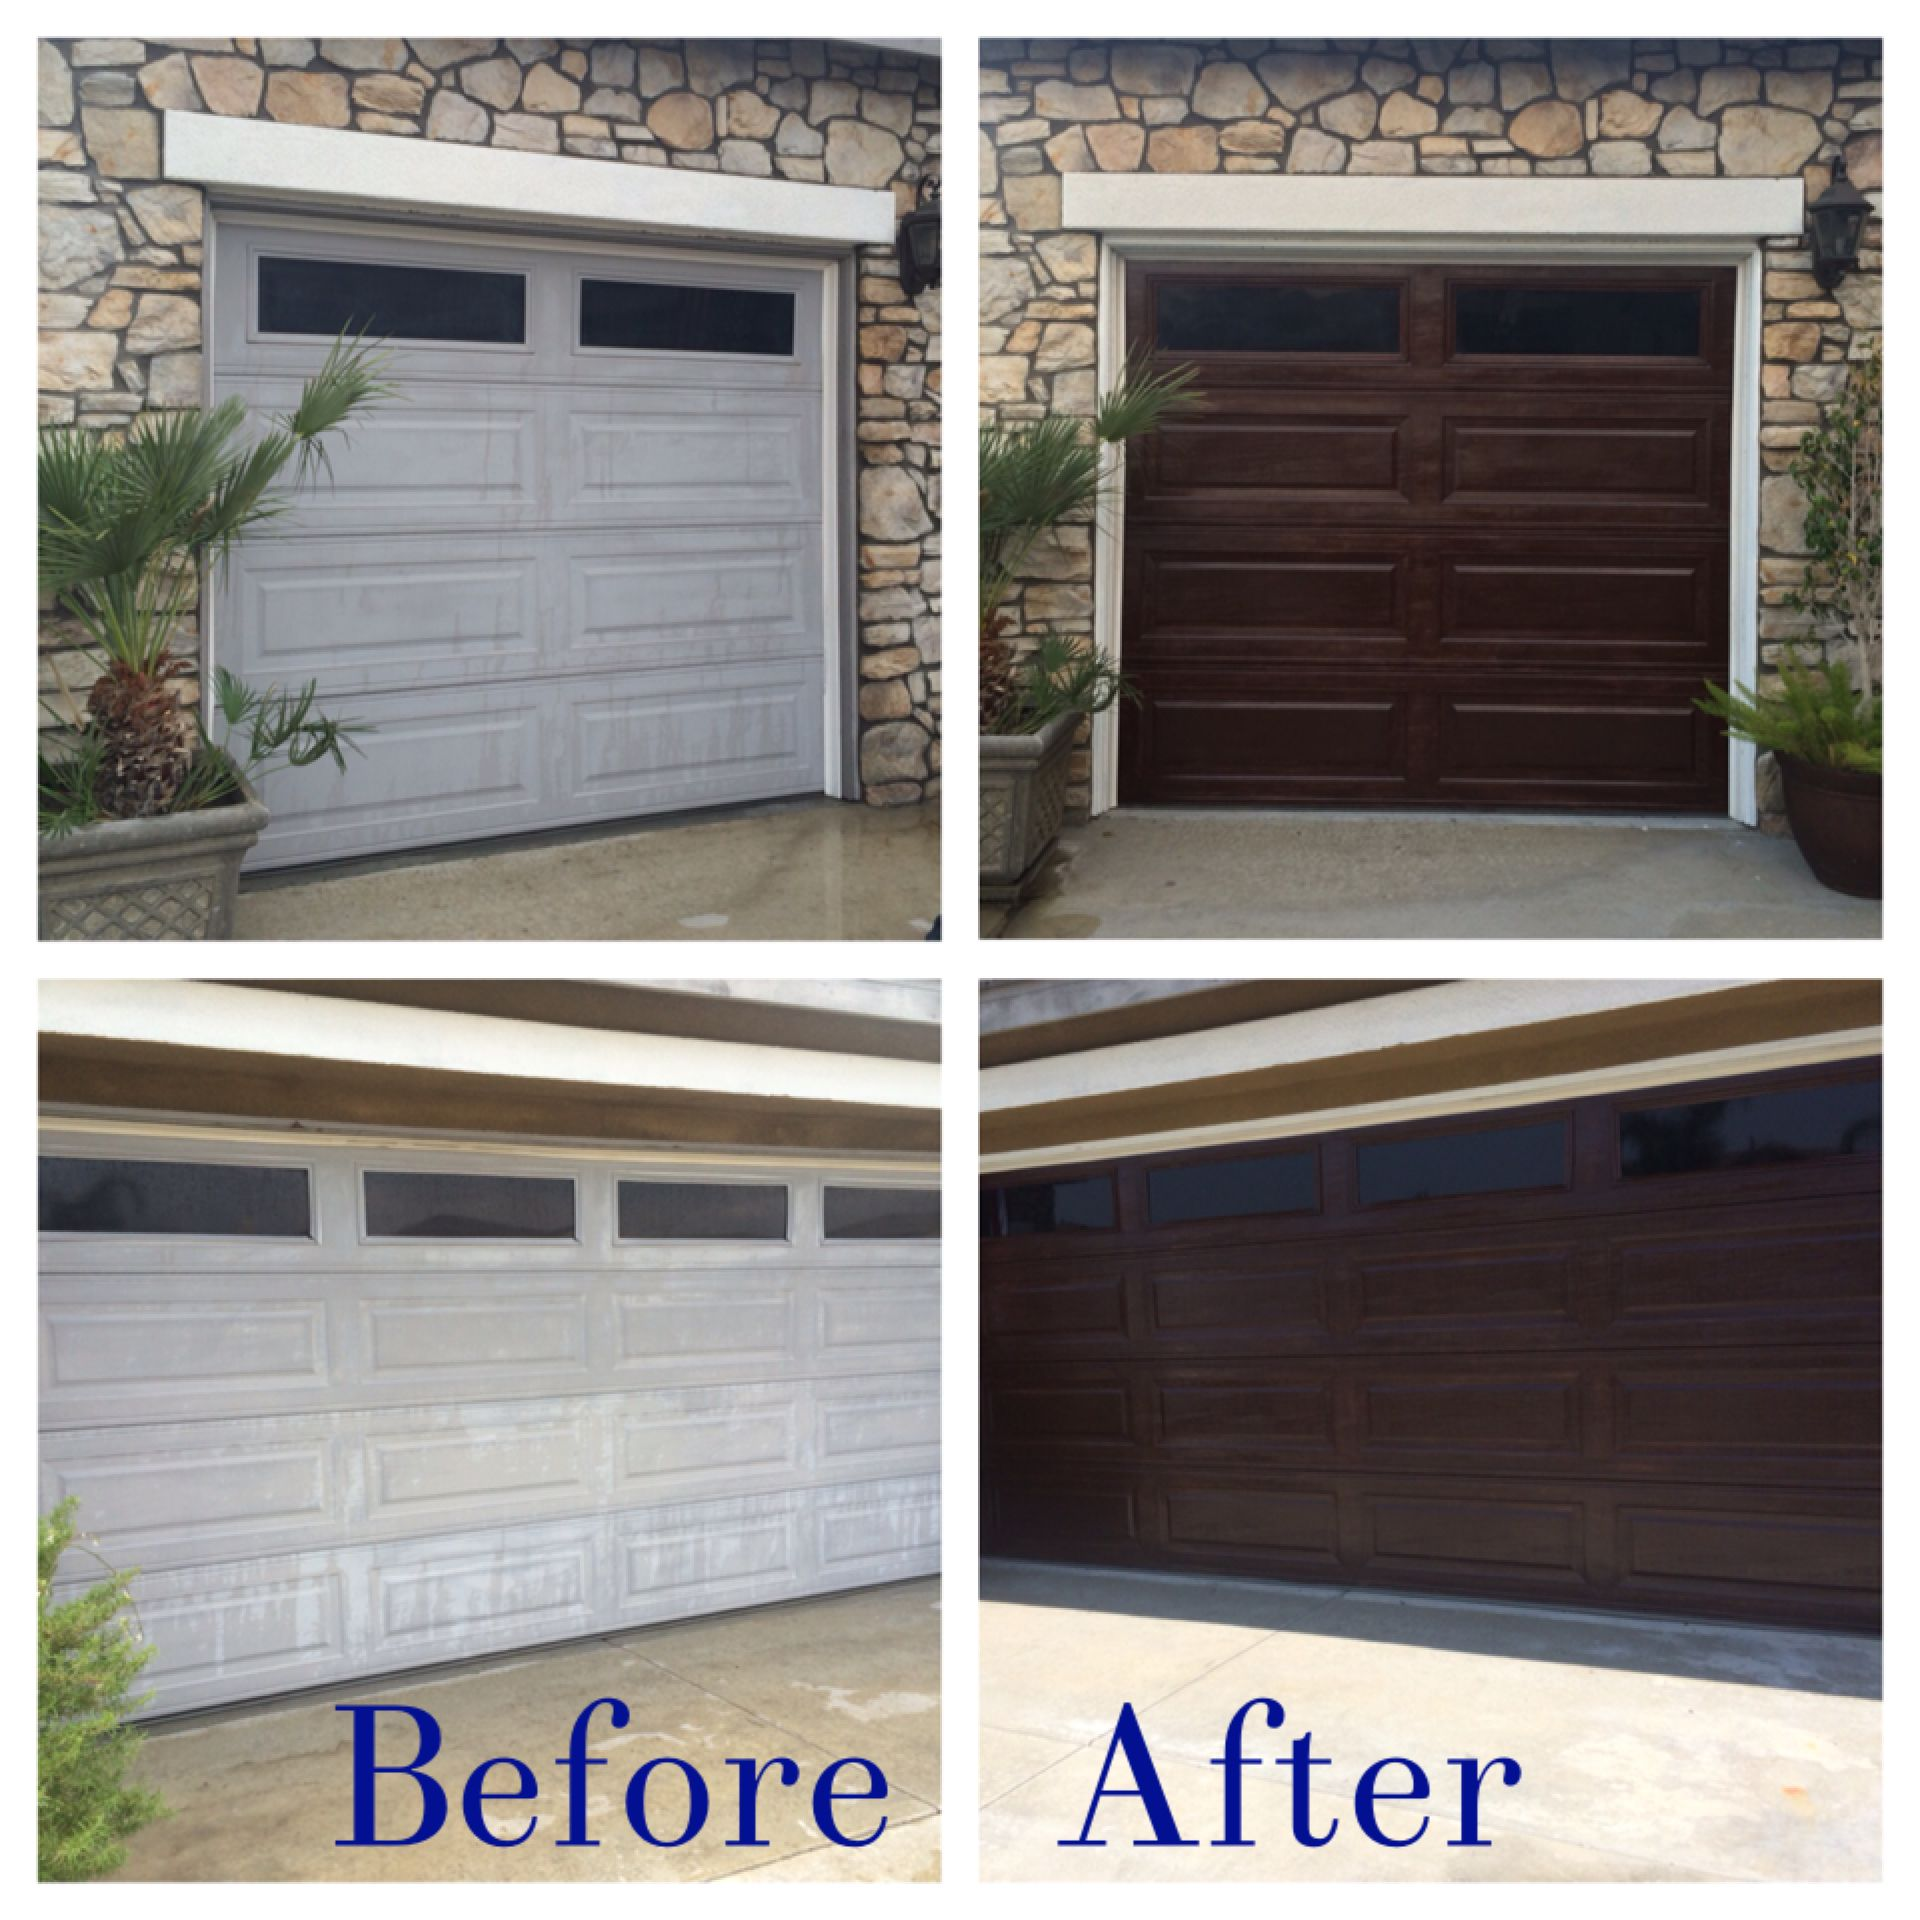 Garage door interior trim - Diy Garage Door Makeover Using Minwax Gel Stain In Hickory